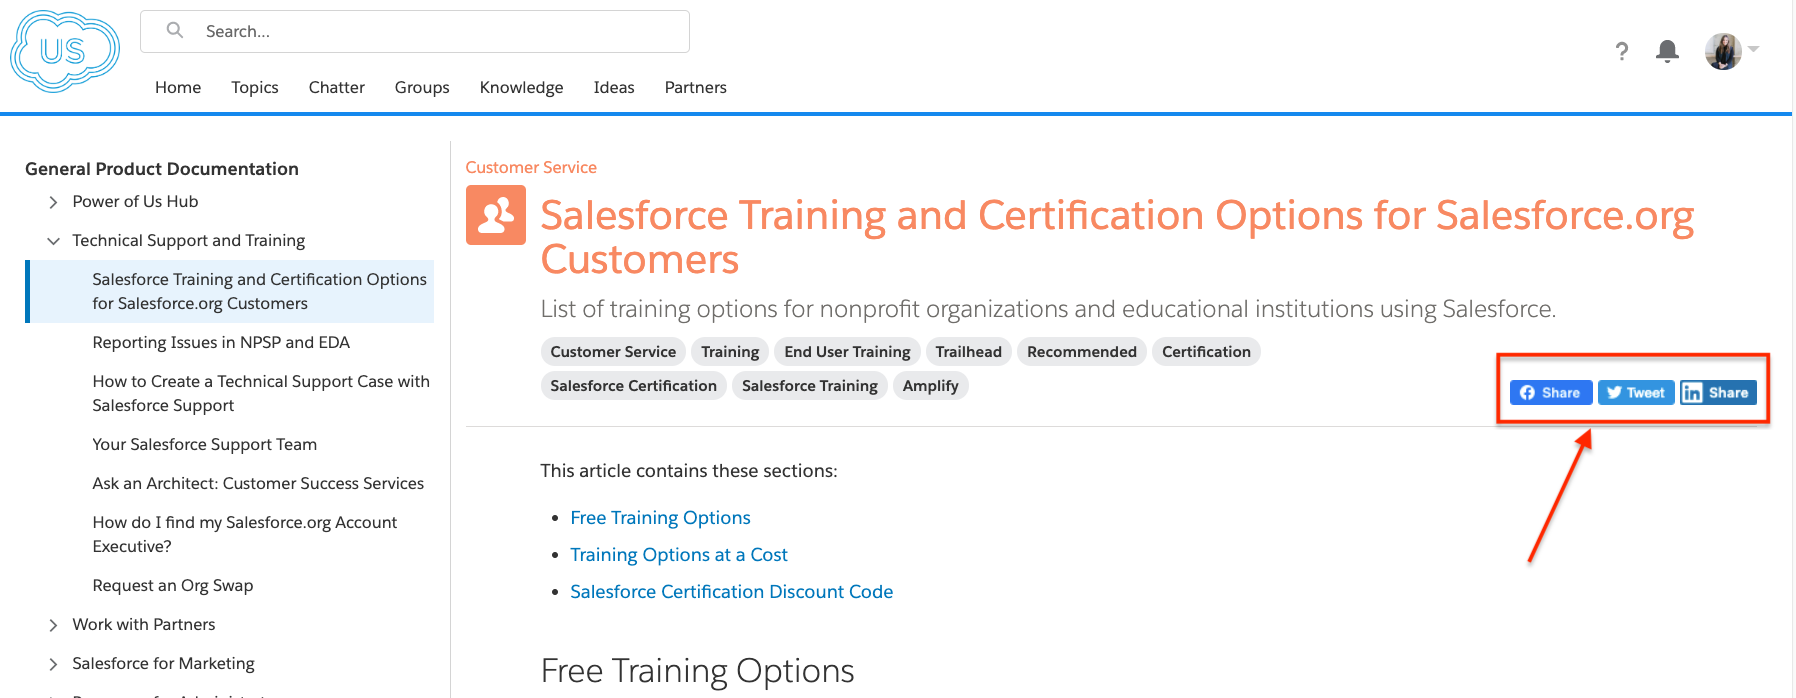 Share your favorite Salesforce.org Knowledge Articles on social media with click to share options directly from the Hub!